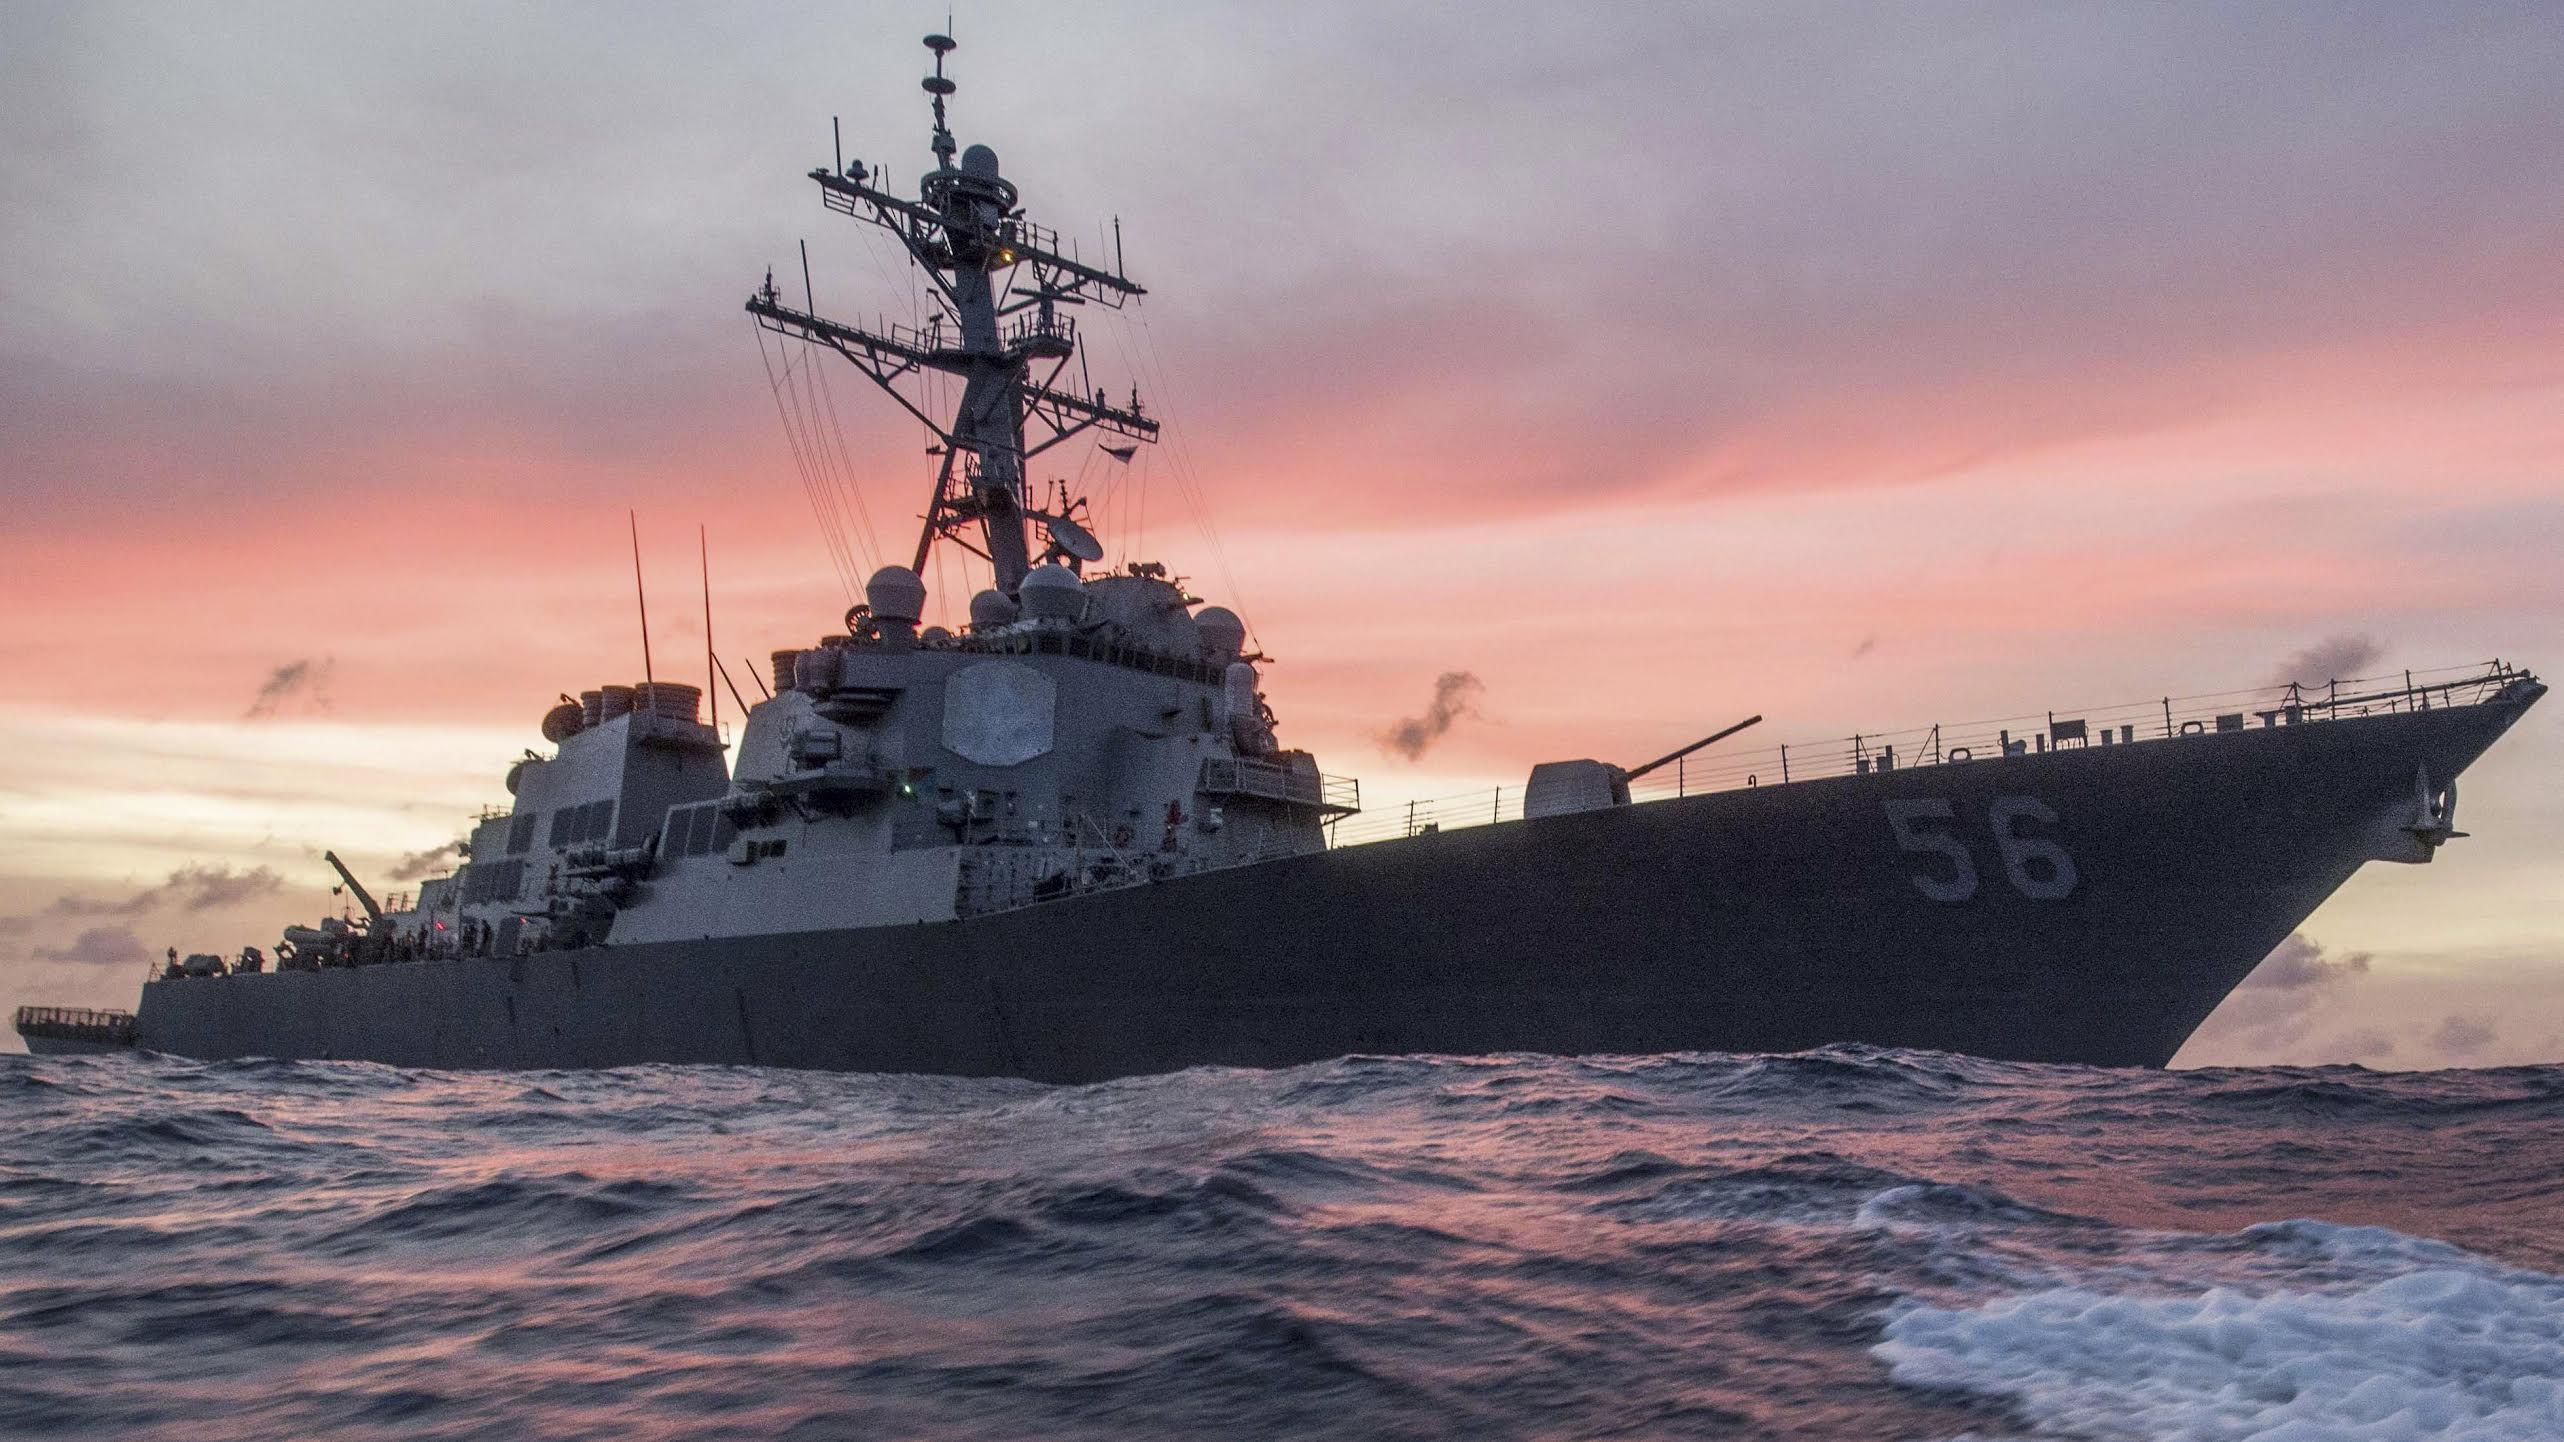 USS John S McCain. Photo courtesy: Petty Officer 3rd Class James Vazquez, US Navy 7th Fleet